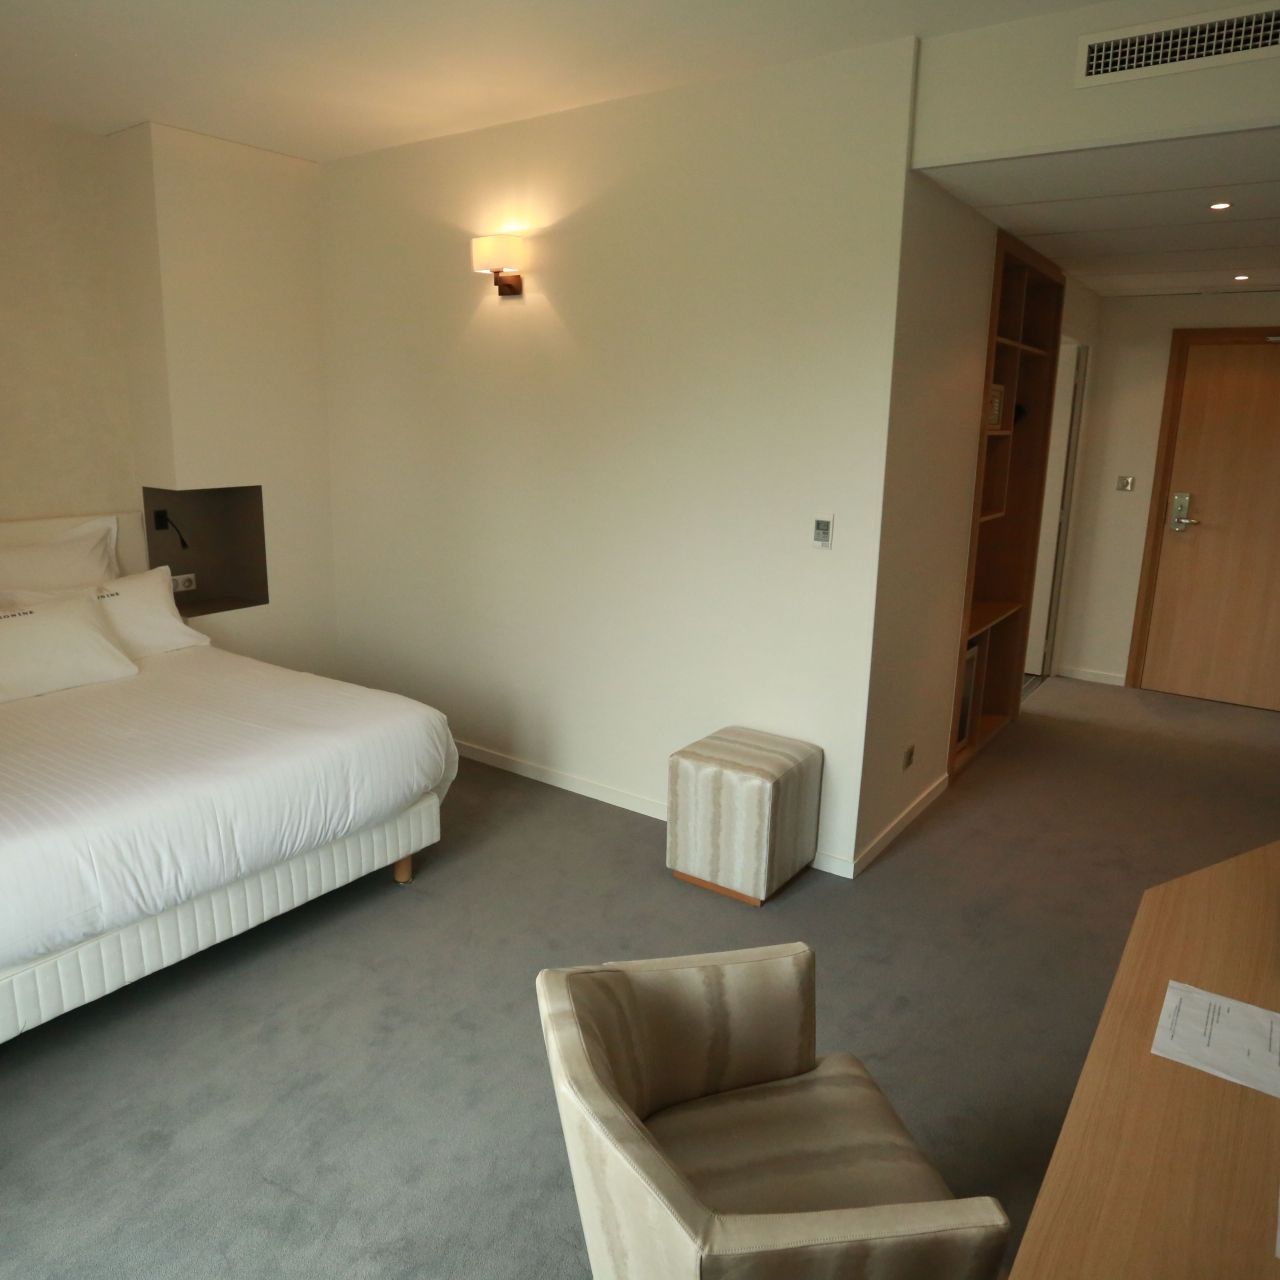 3 hrs star hotel in montceau les mines